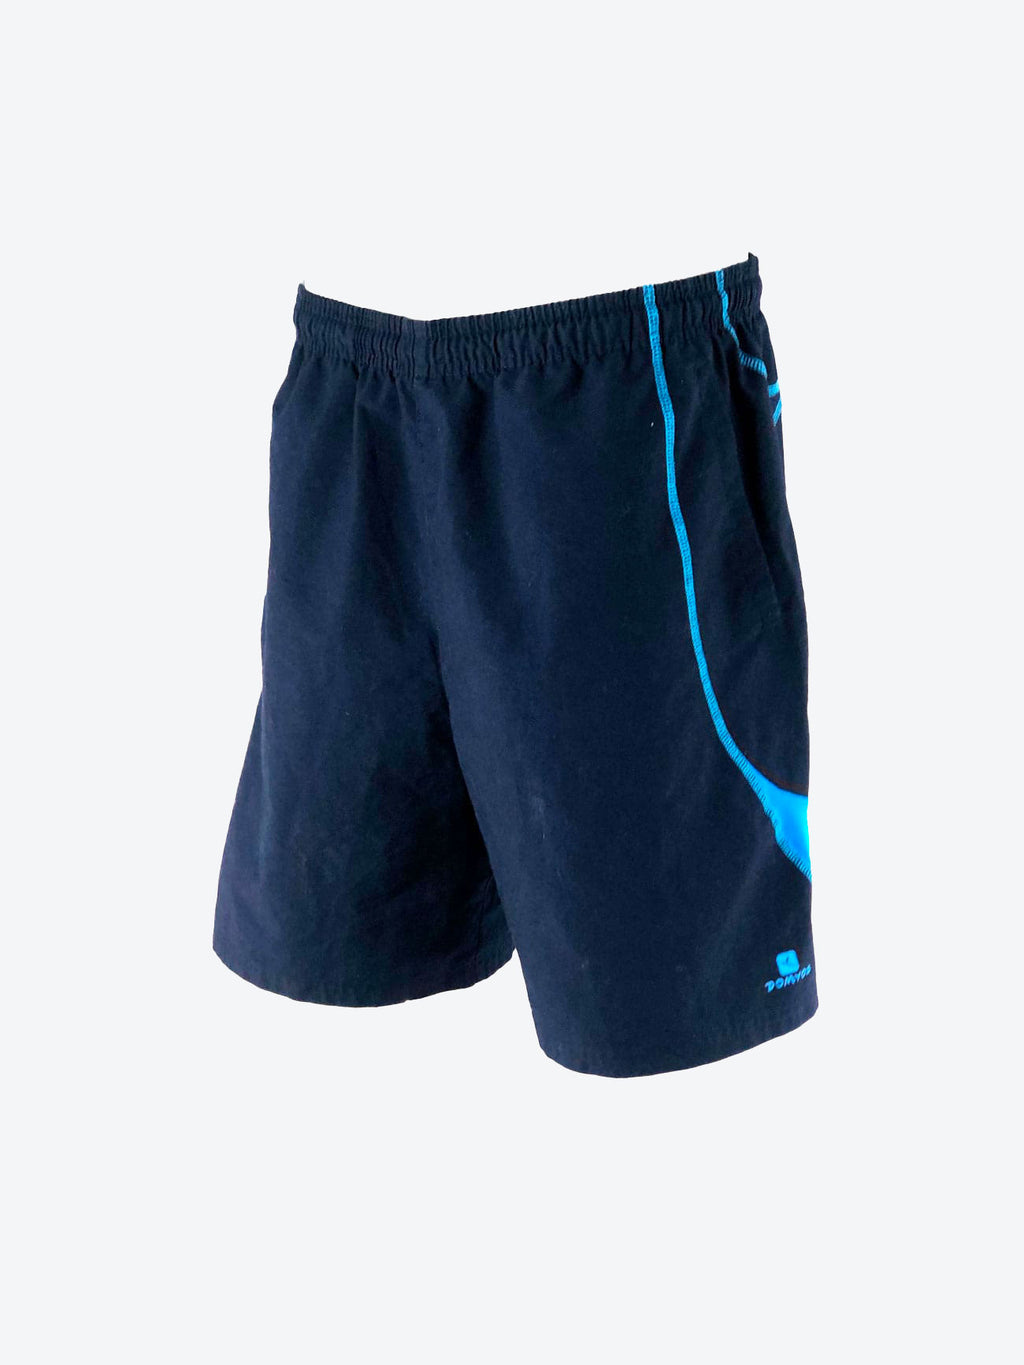 Short Homme d'occasion DOMYOS - Taille : 44